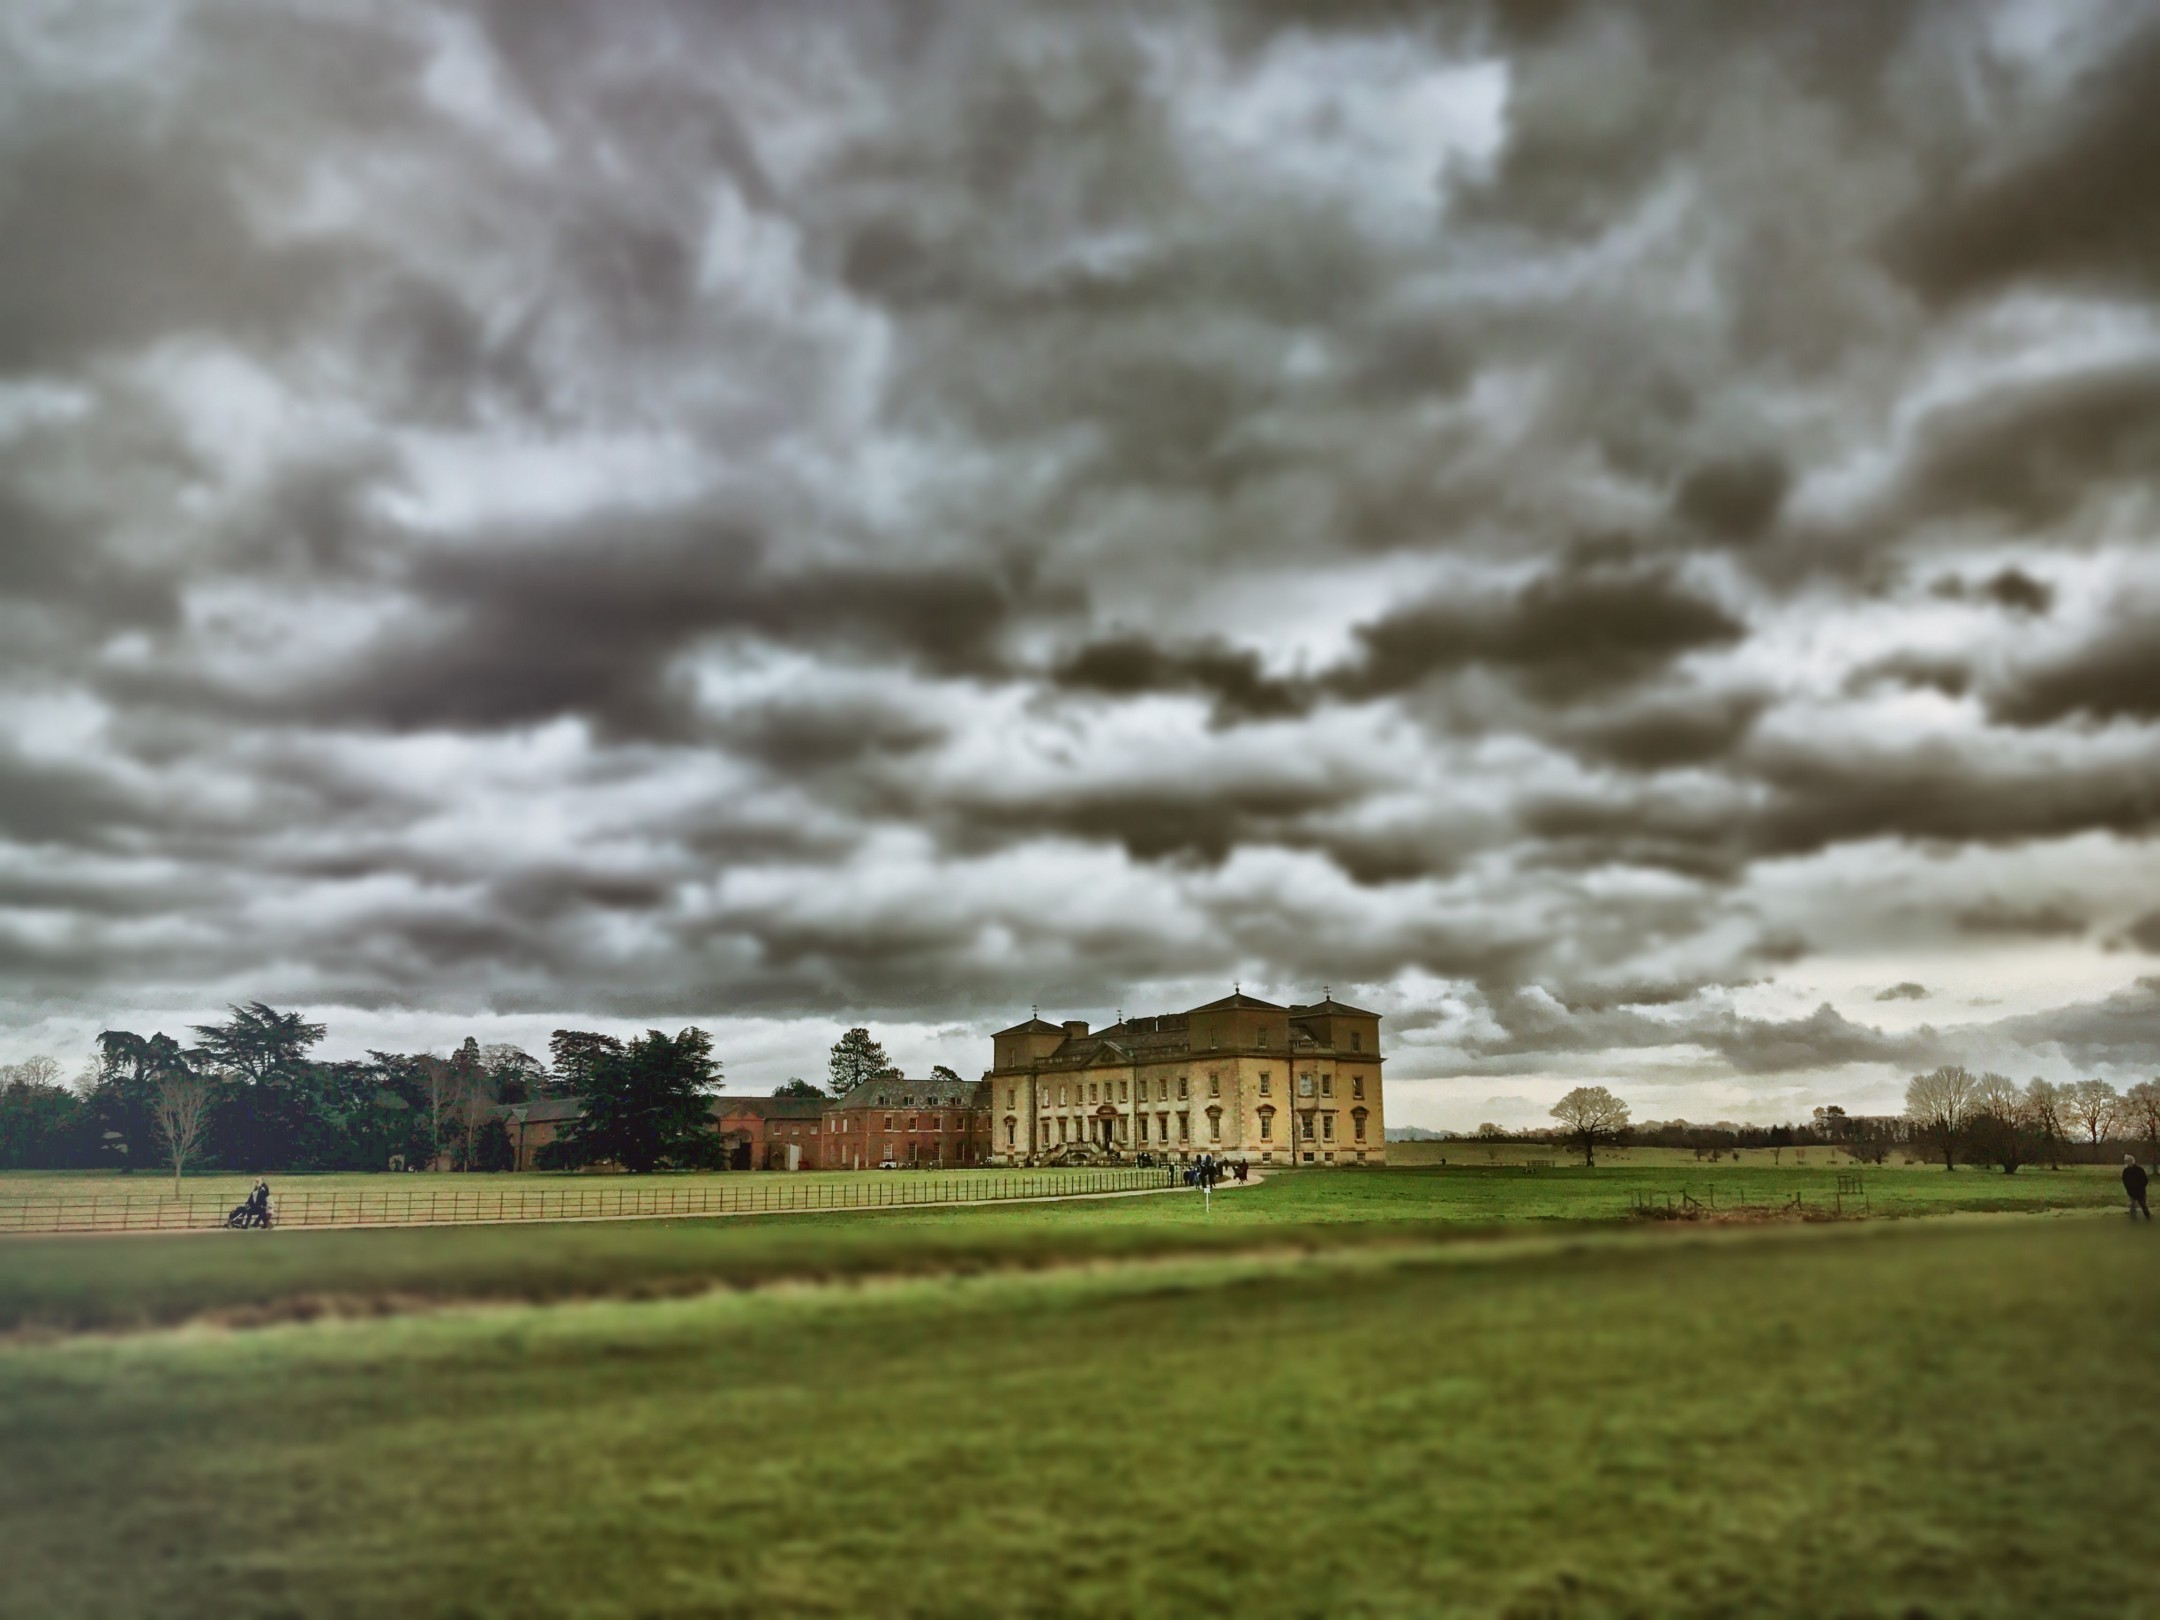 Moody clouds hang over Croome Park mansion house